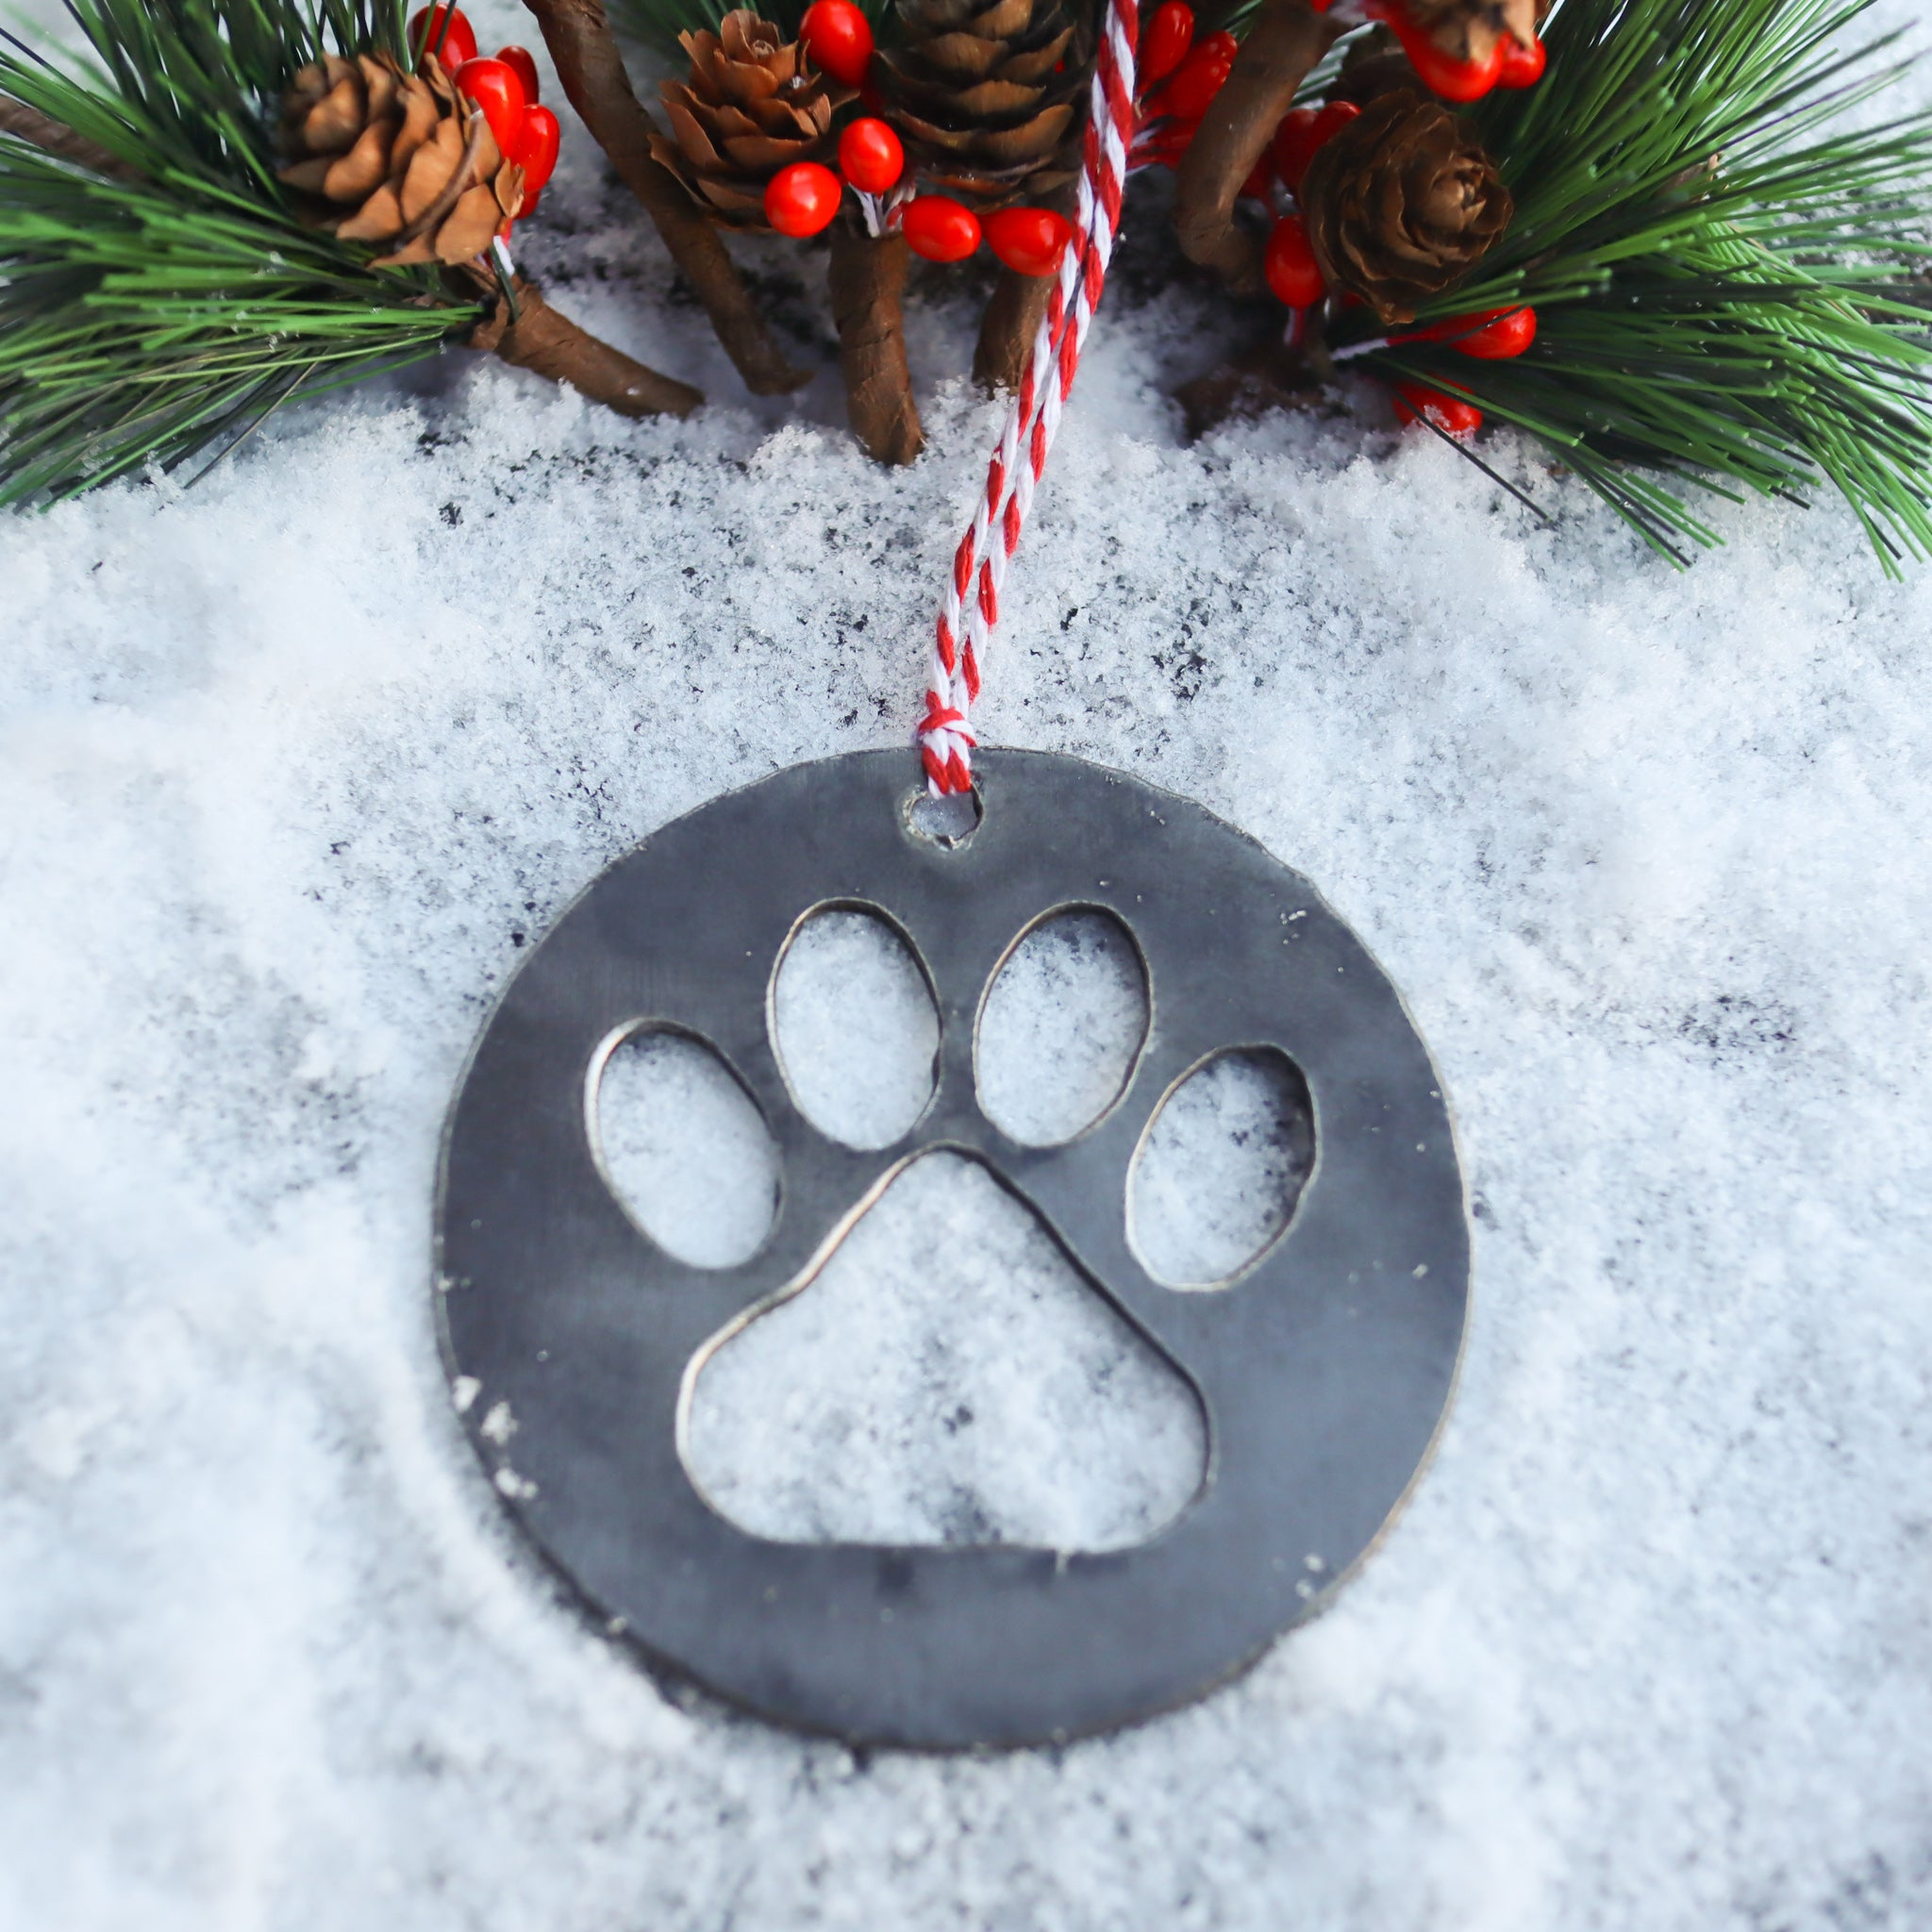 Cat Paw Christmas Ornament - Pet Lover Holiday Stocking Stuffer Gift - Tree Home Decor